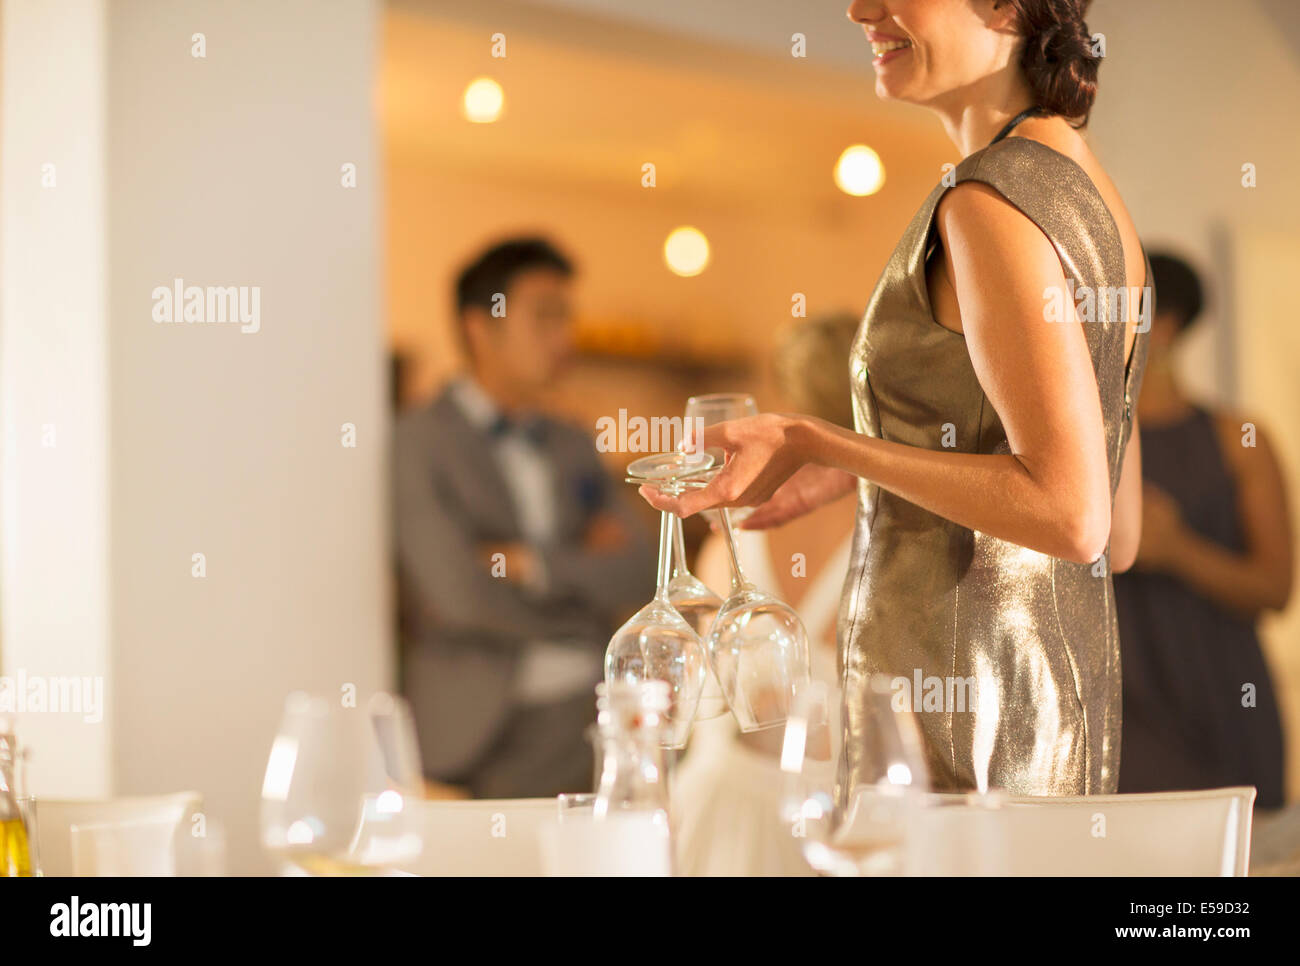 Woman setting table at dinner party Stock Photo